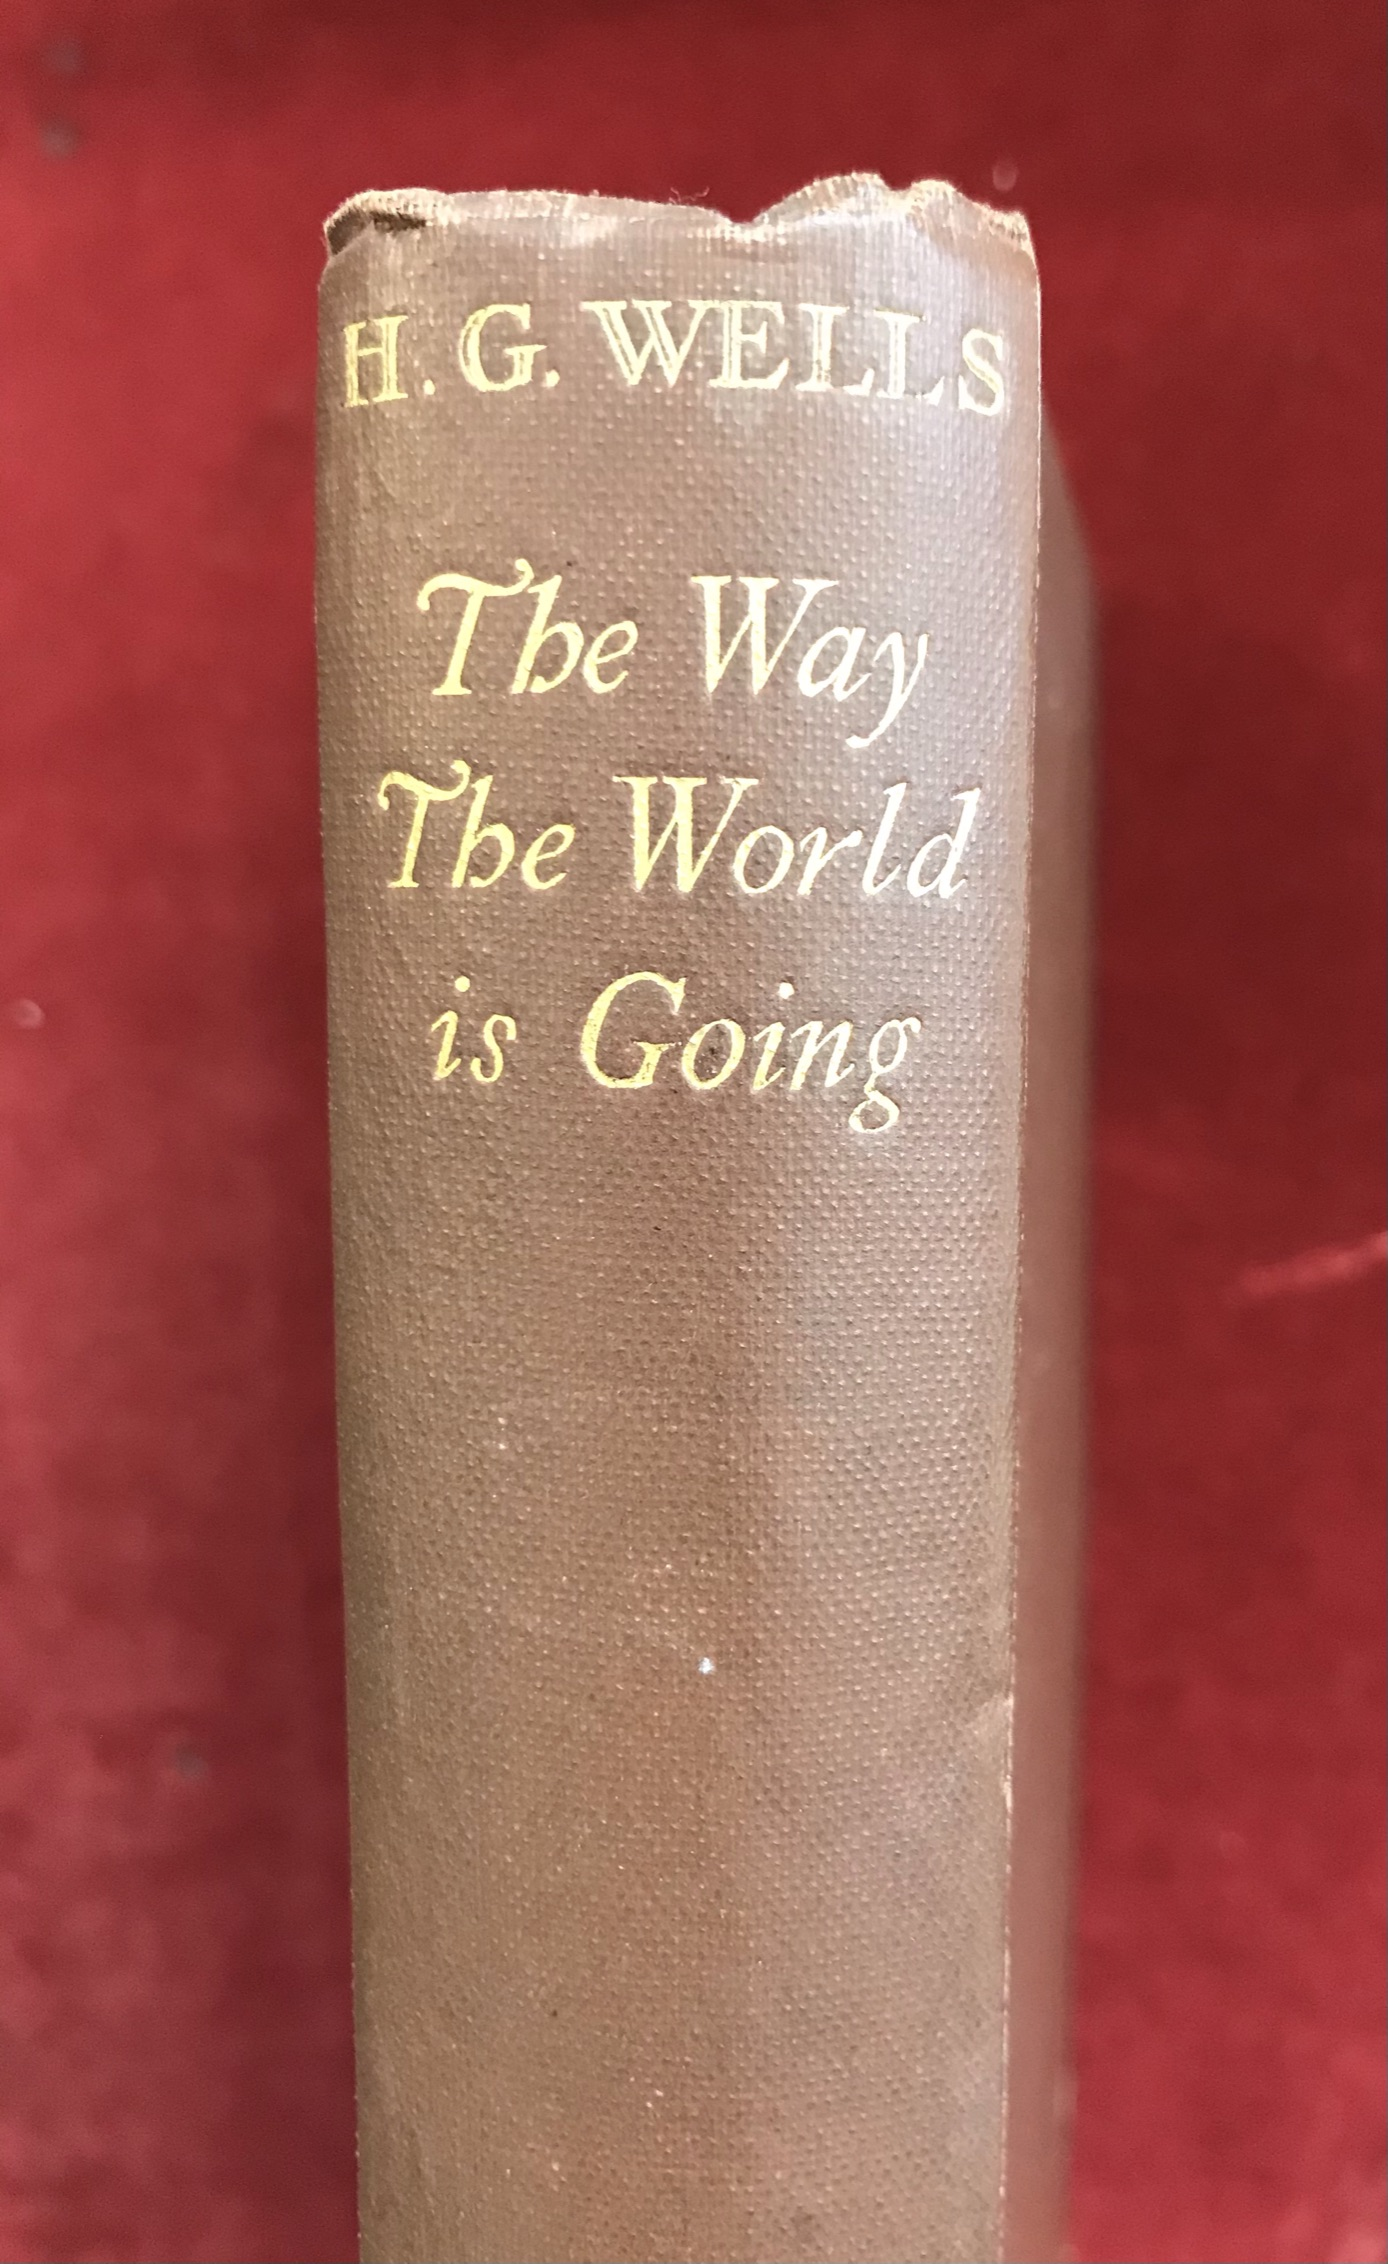 The Way the World is GoingFirst edition, 1928